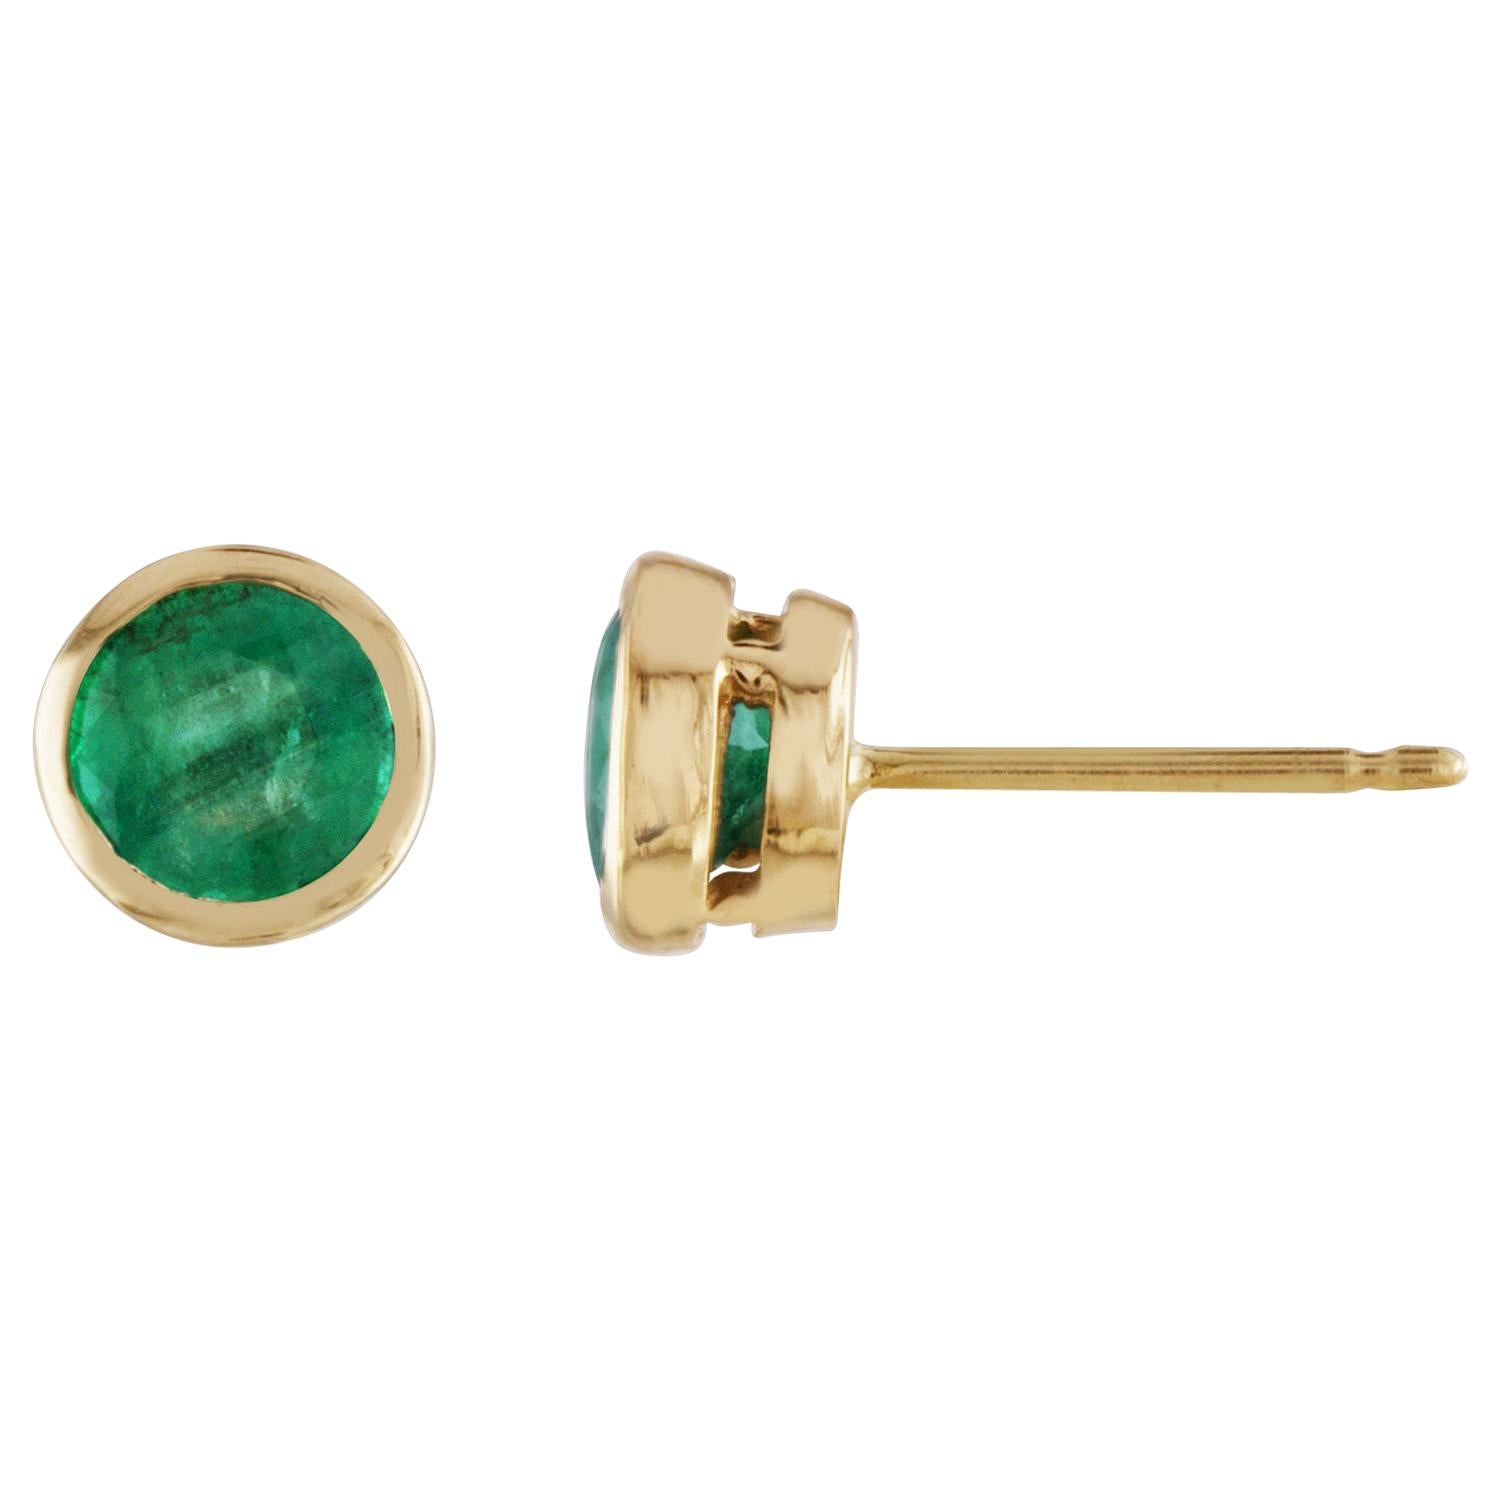 1.00 Carat Round Emeralds Gold Studs Earrings